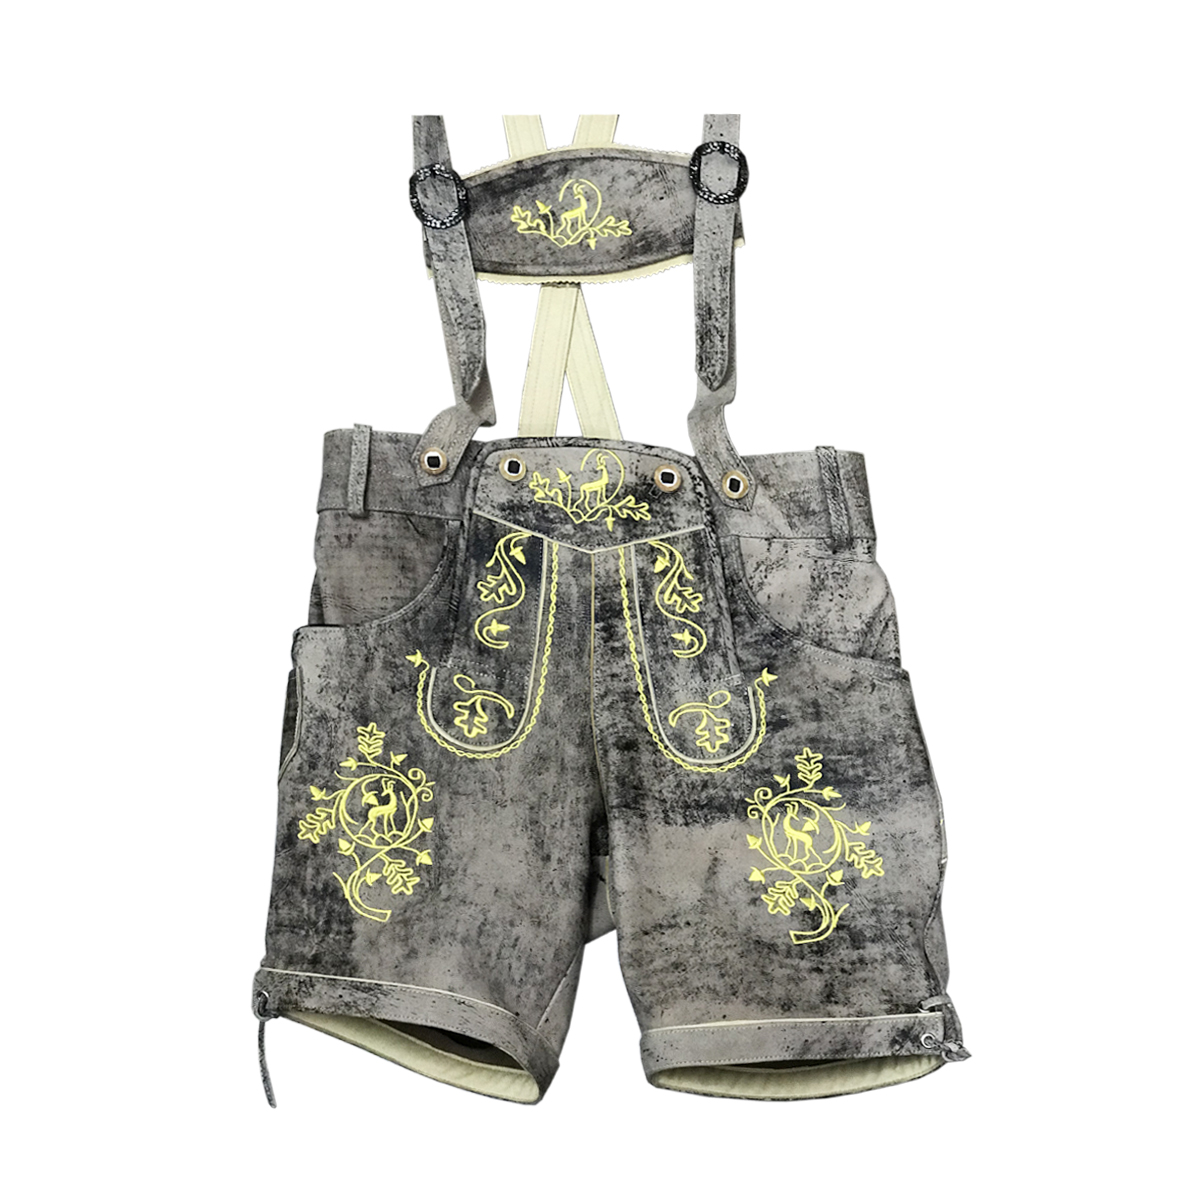 GREY MEN SHORT LEDERHOSEN WITH YELLOW ART WORK